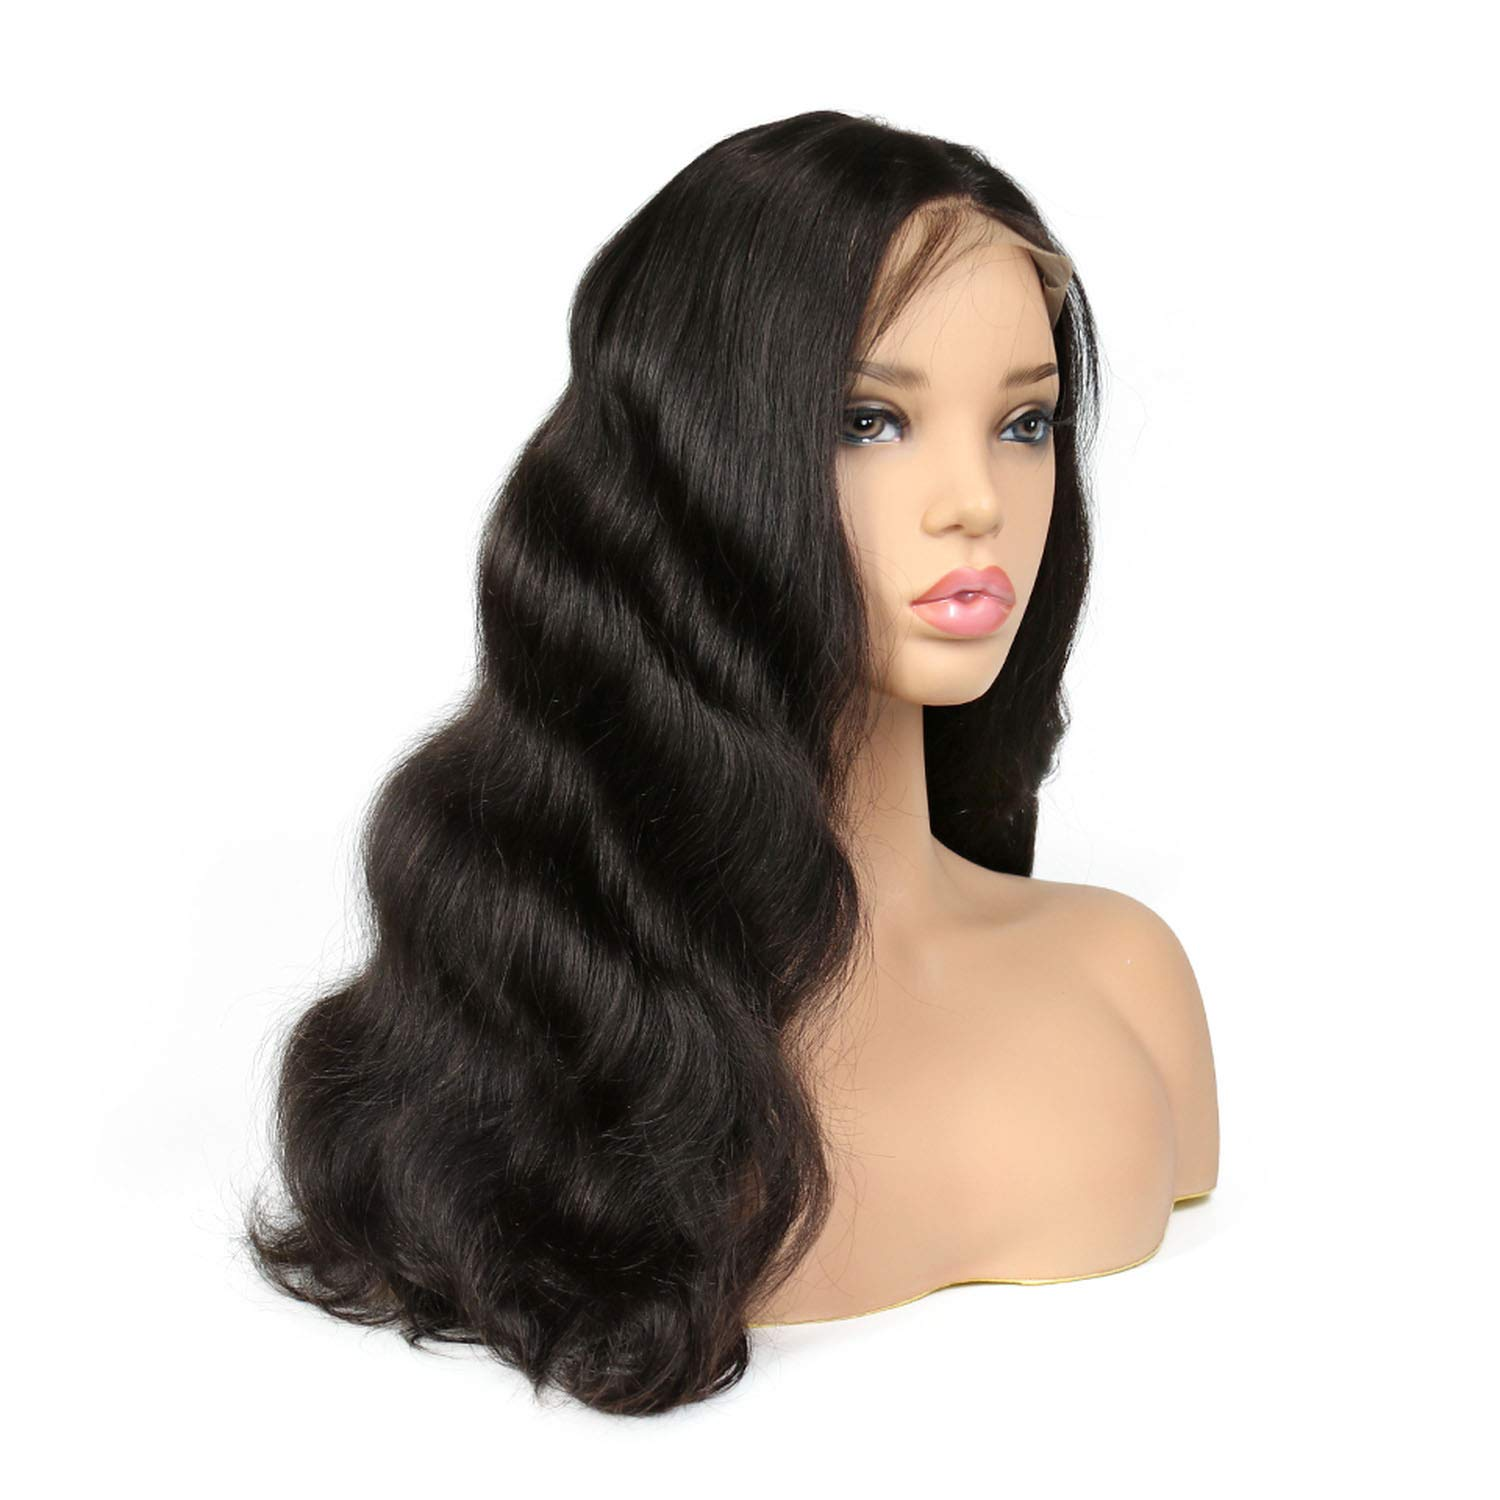 Glad You Came 250% Density Lace Front Human Hair Wigs For Black Women Body Wave Brazilian Remy Hair Lace Wig With Baby Hair,16inches